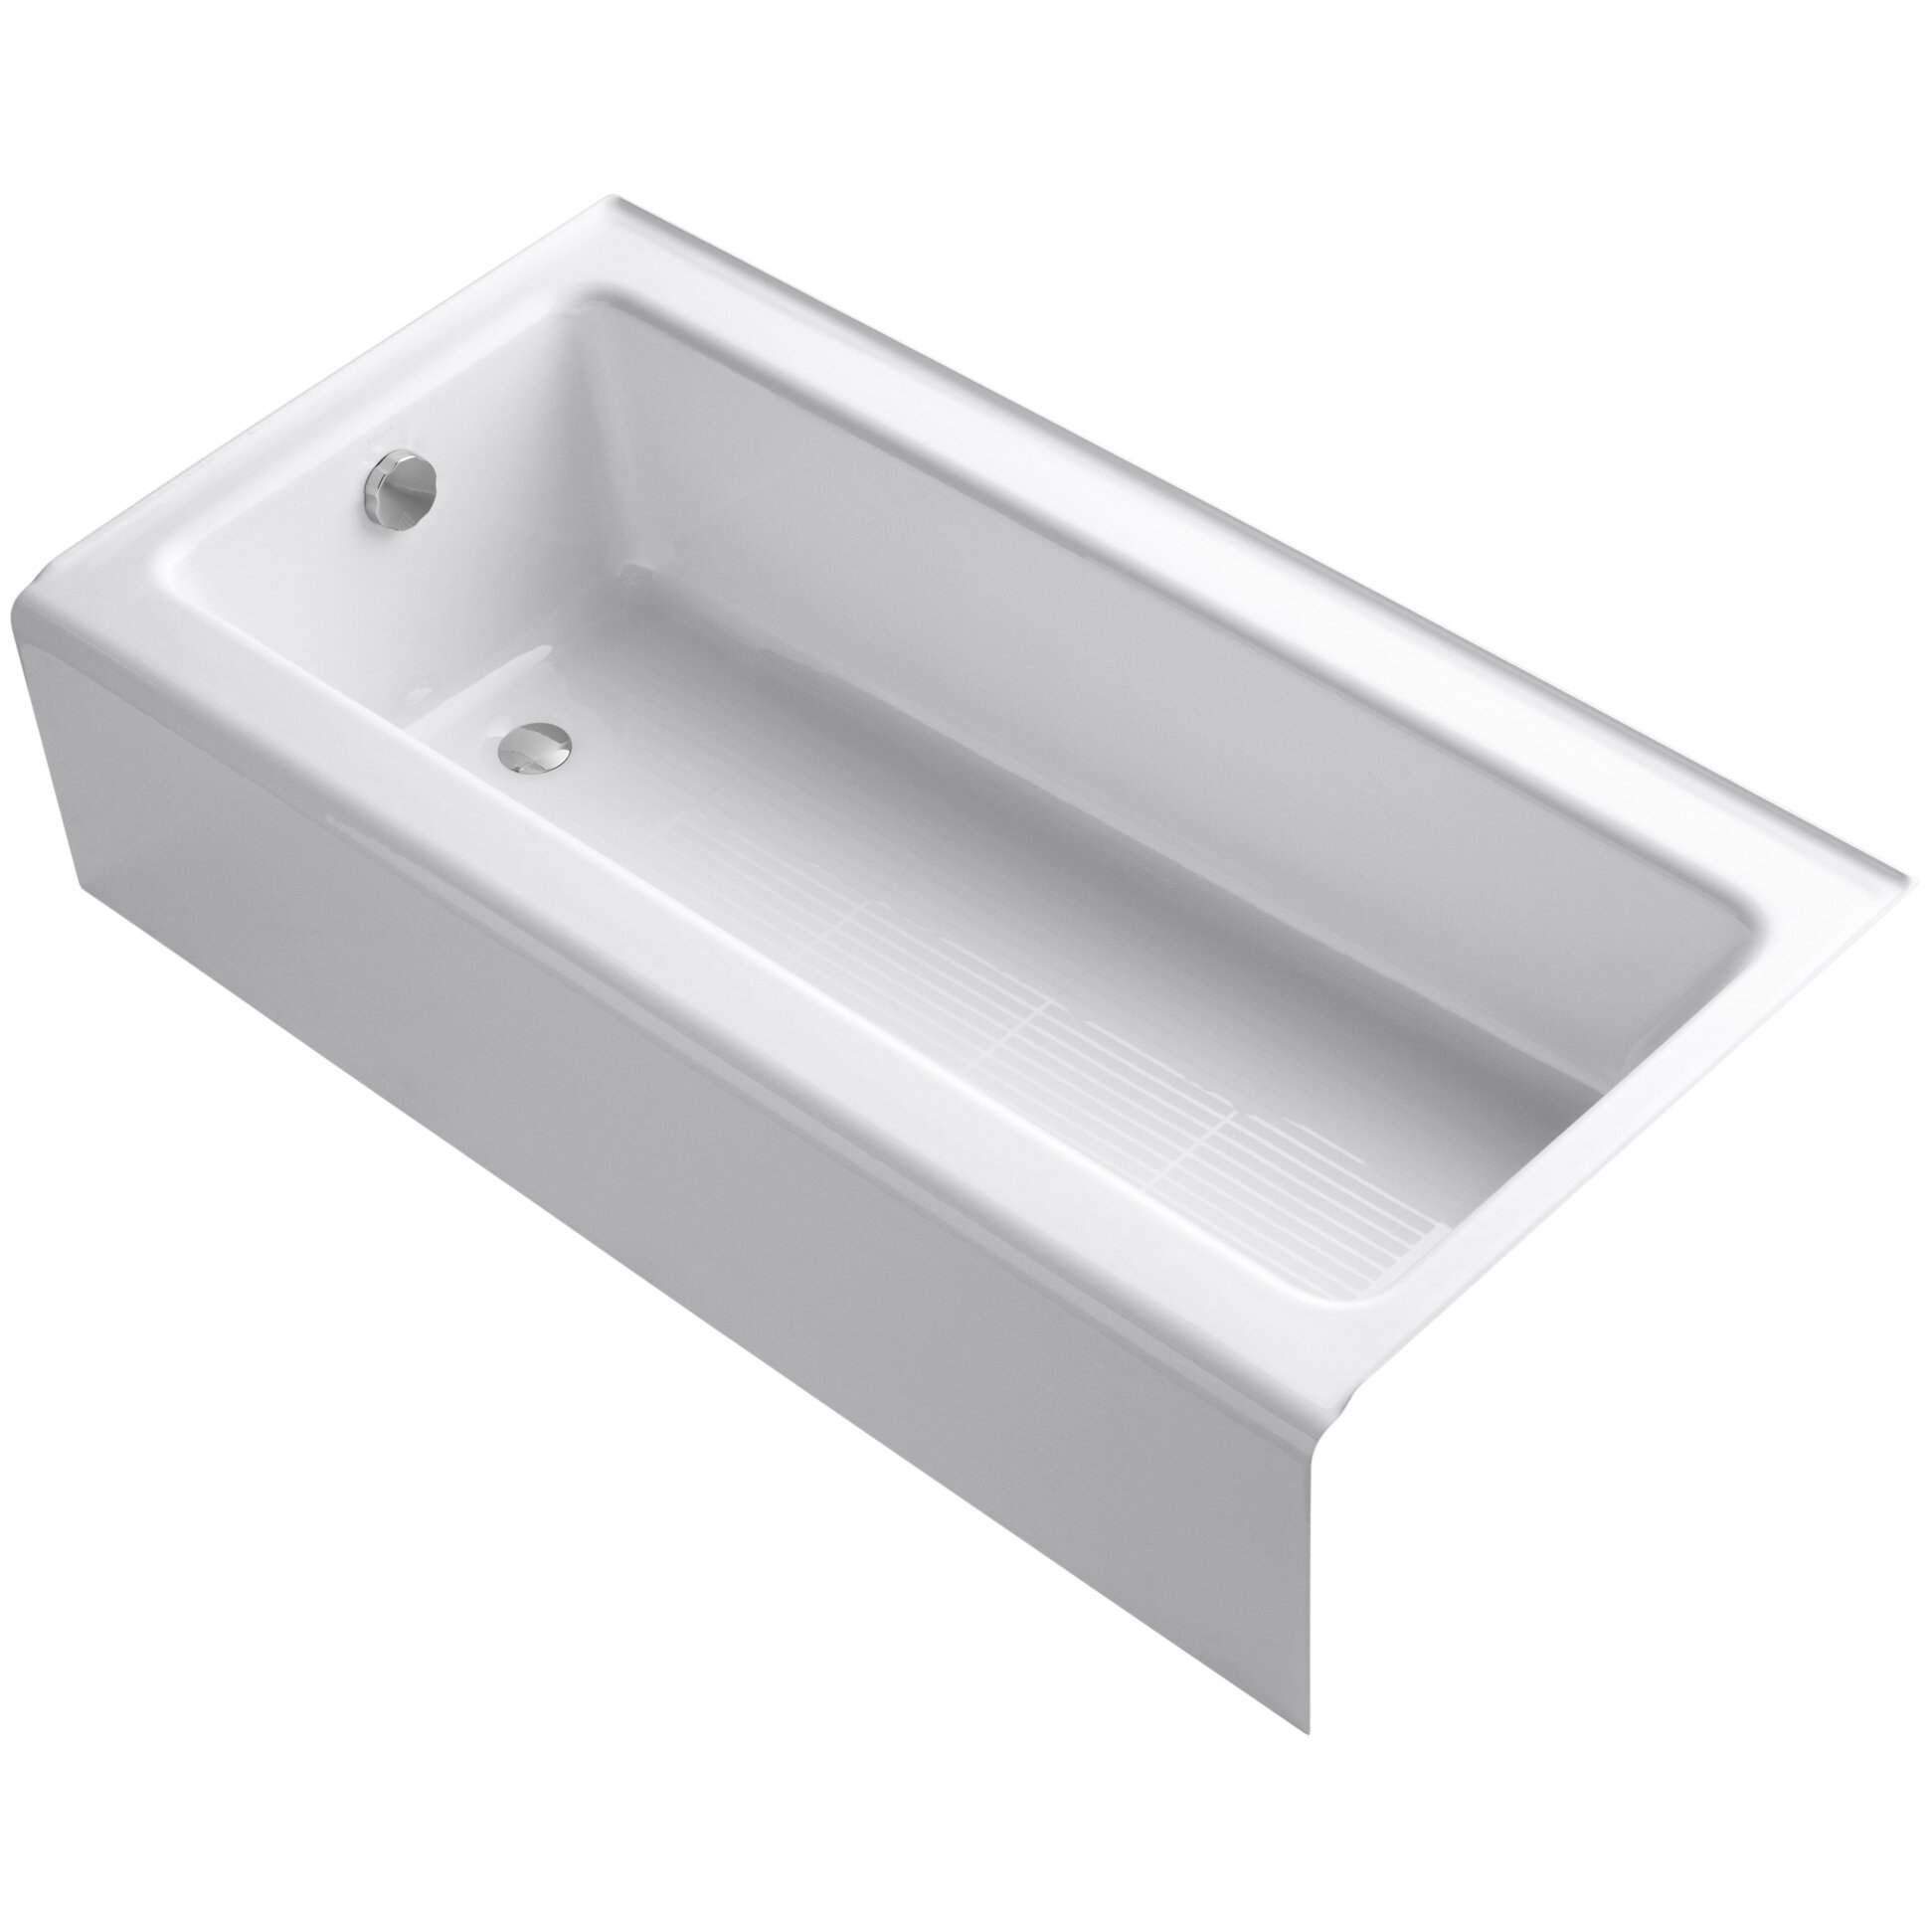 Kohler bellwether 60 x 30 bath with integral apron for Porte 60 x 60